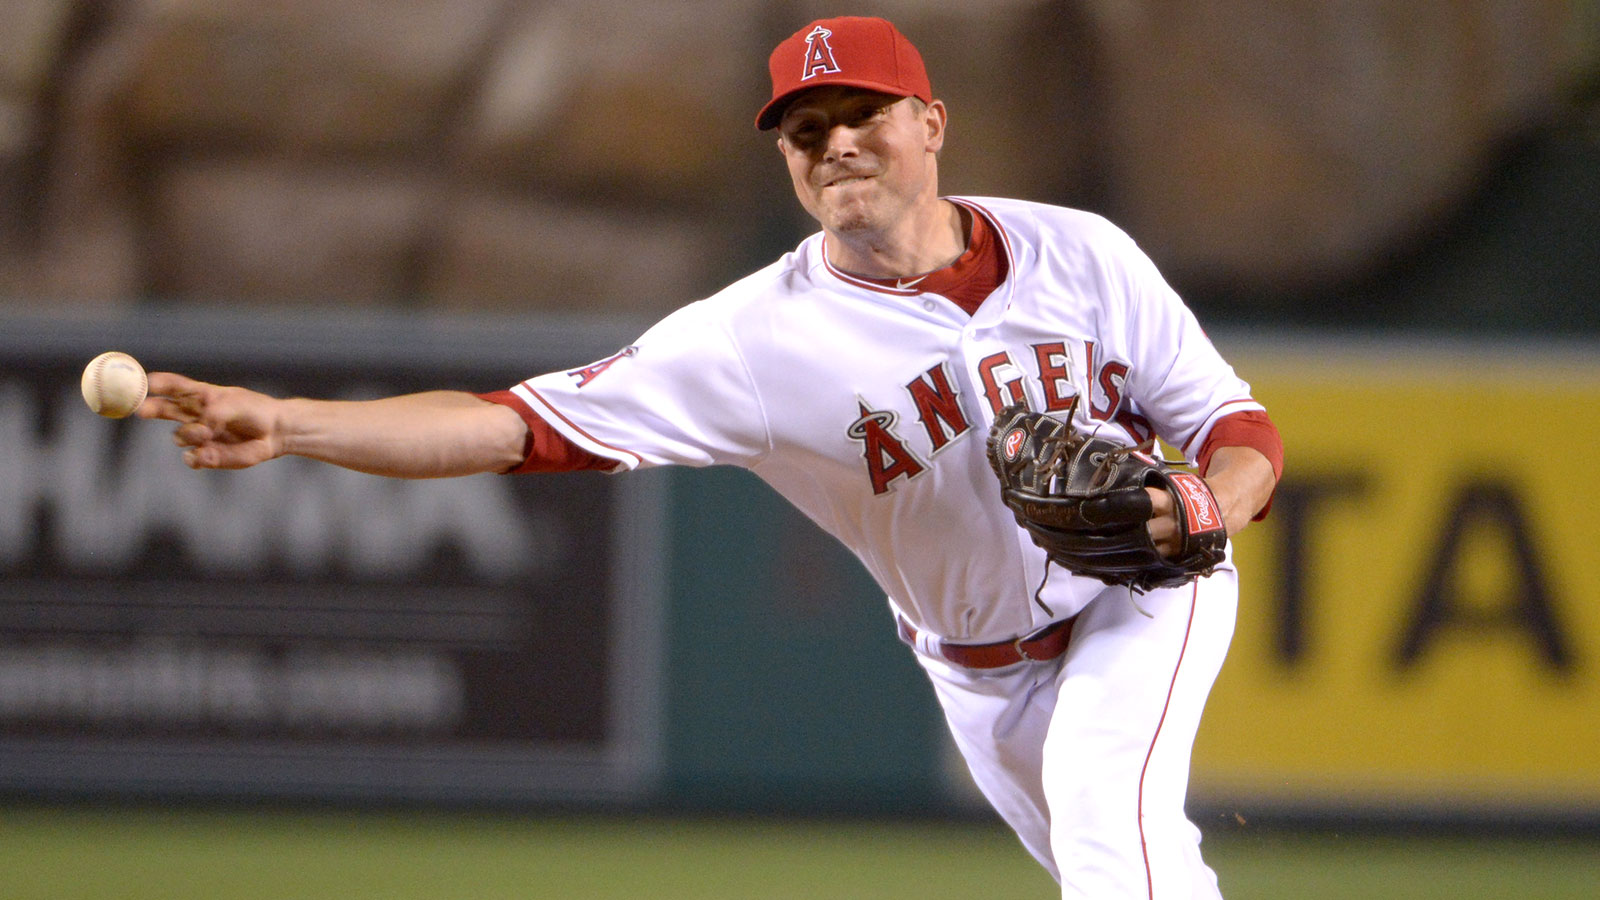 042814-mlb-los-angeles-angels-reliever-joe-smith-pi1